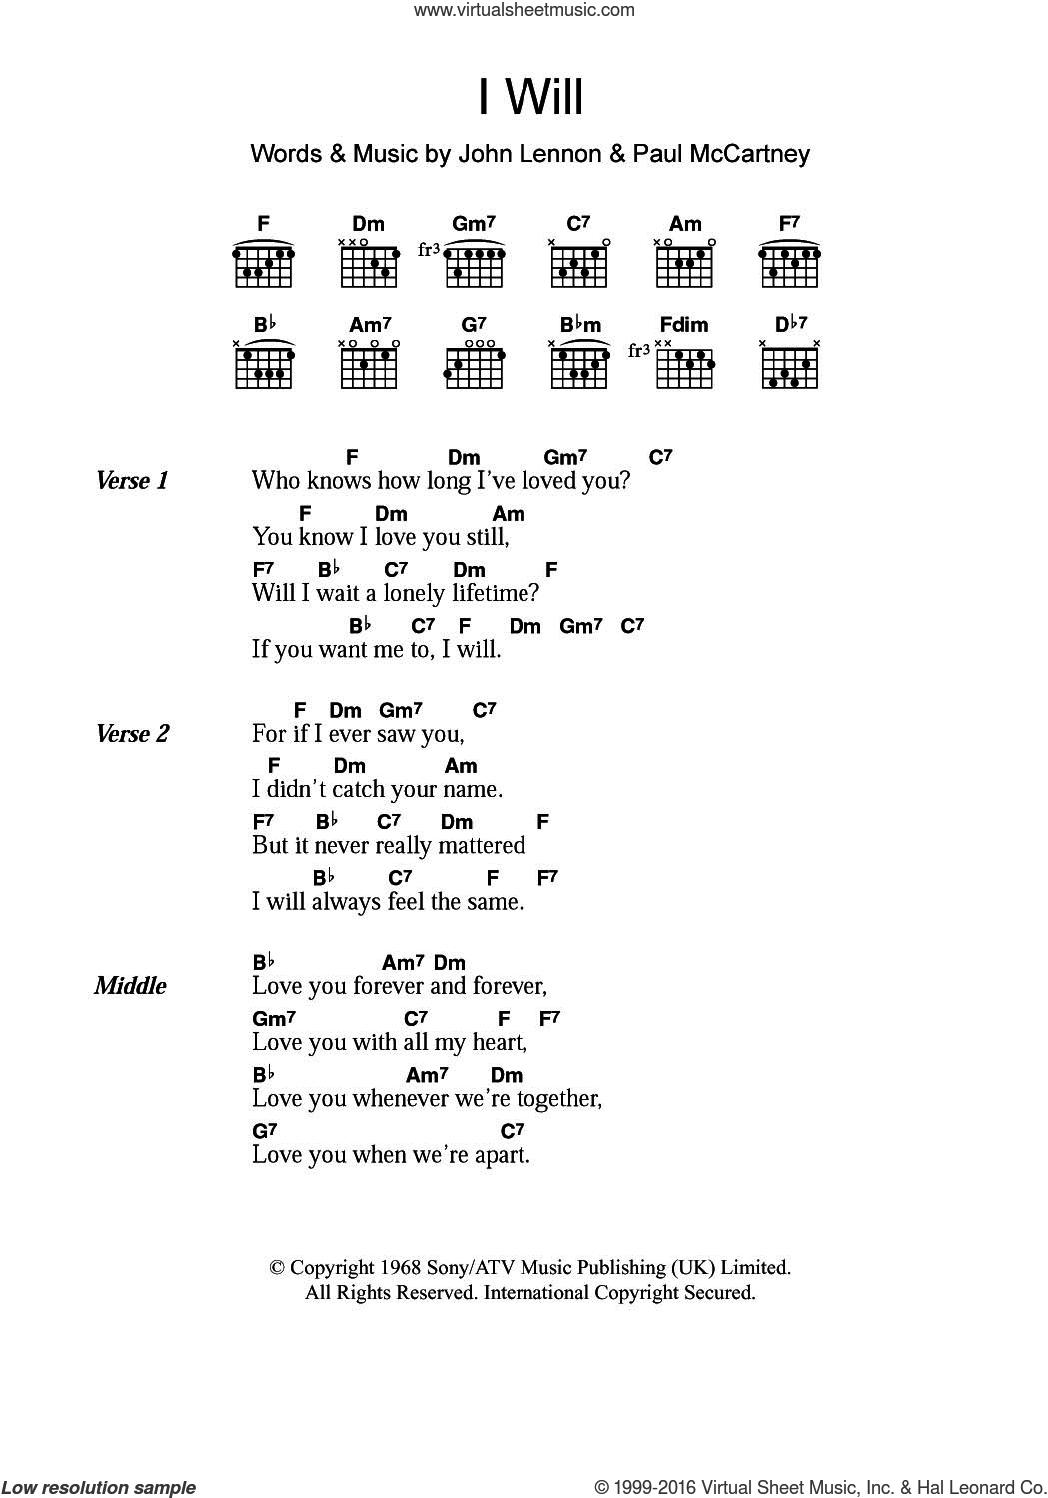 Beatles   I Will sheet music for guitar chords [PDF]